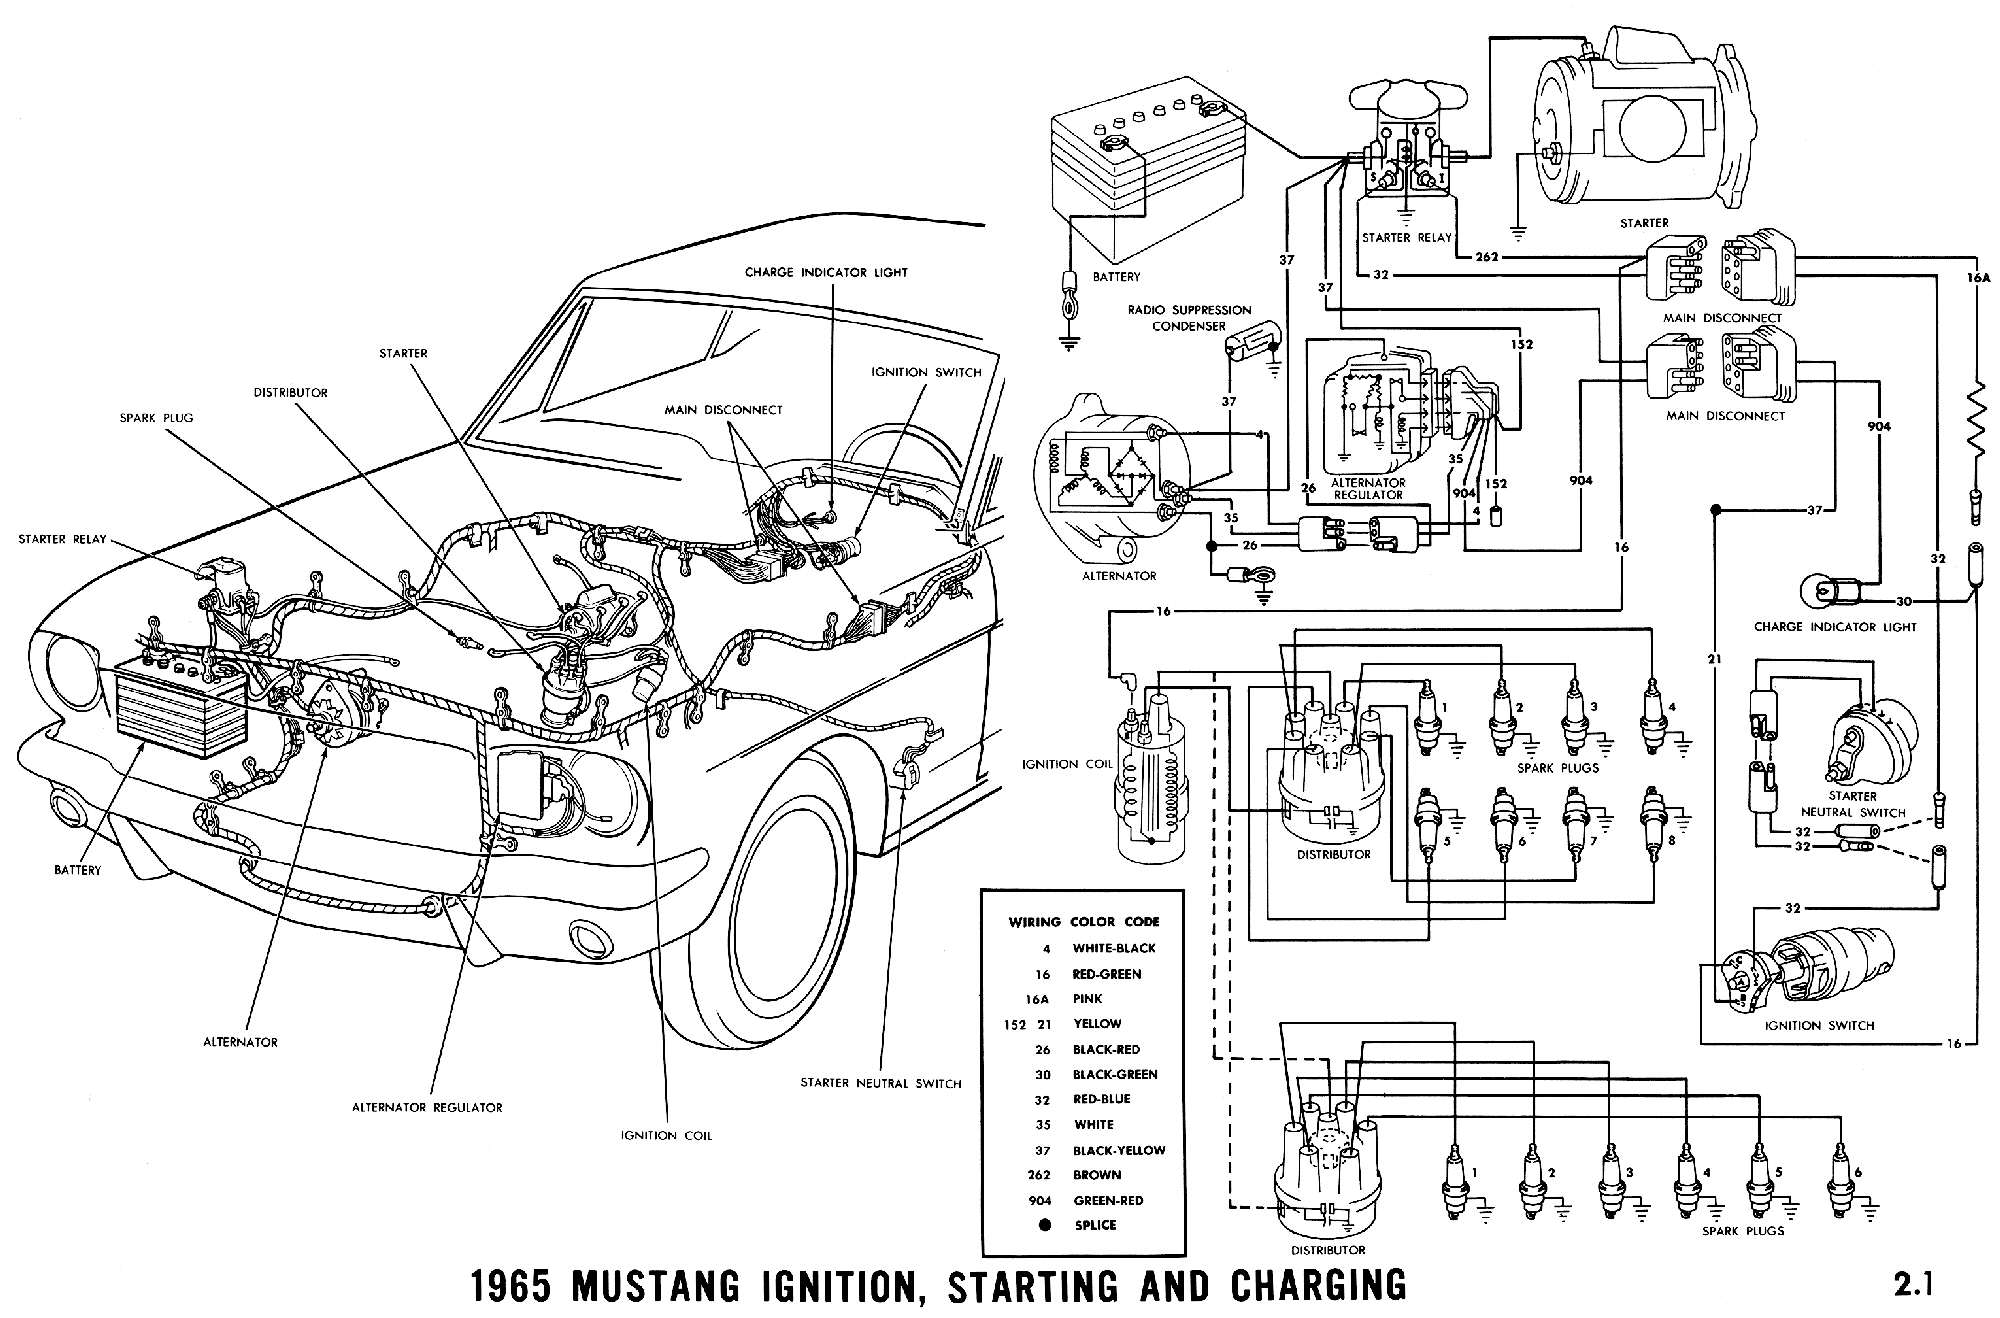 1965c 1965 mustang wiring diagrams average joe restoration 1967 Mustang Wiring Harness Pigtail Diagram at webbmarketing.co